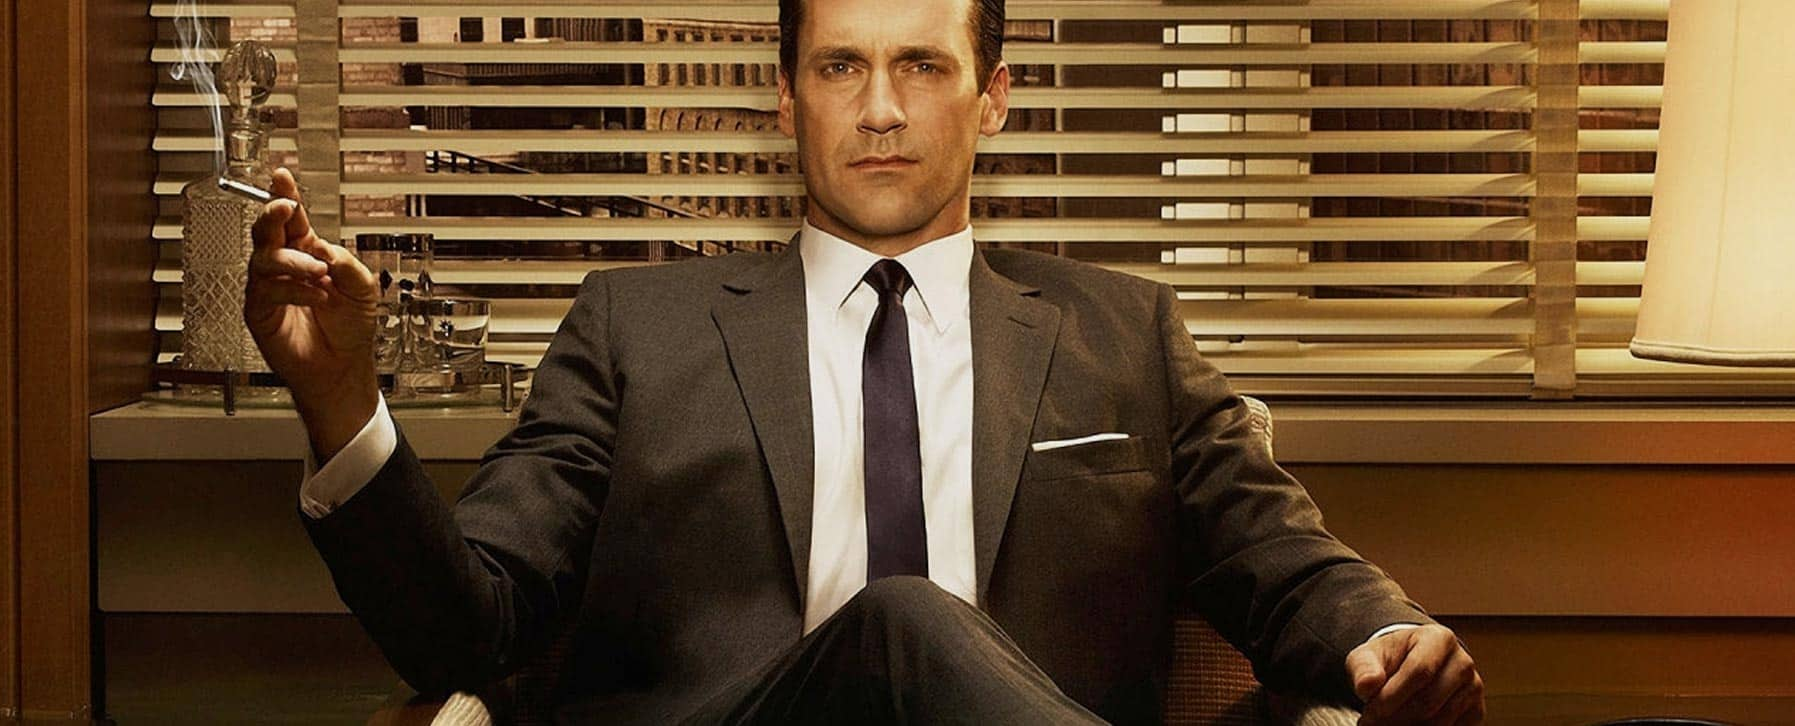 How to Give a Presentation Like Don Draper